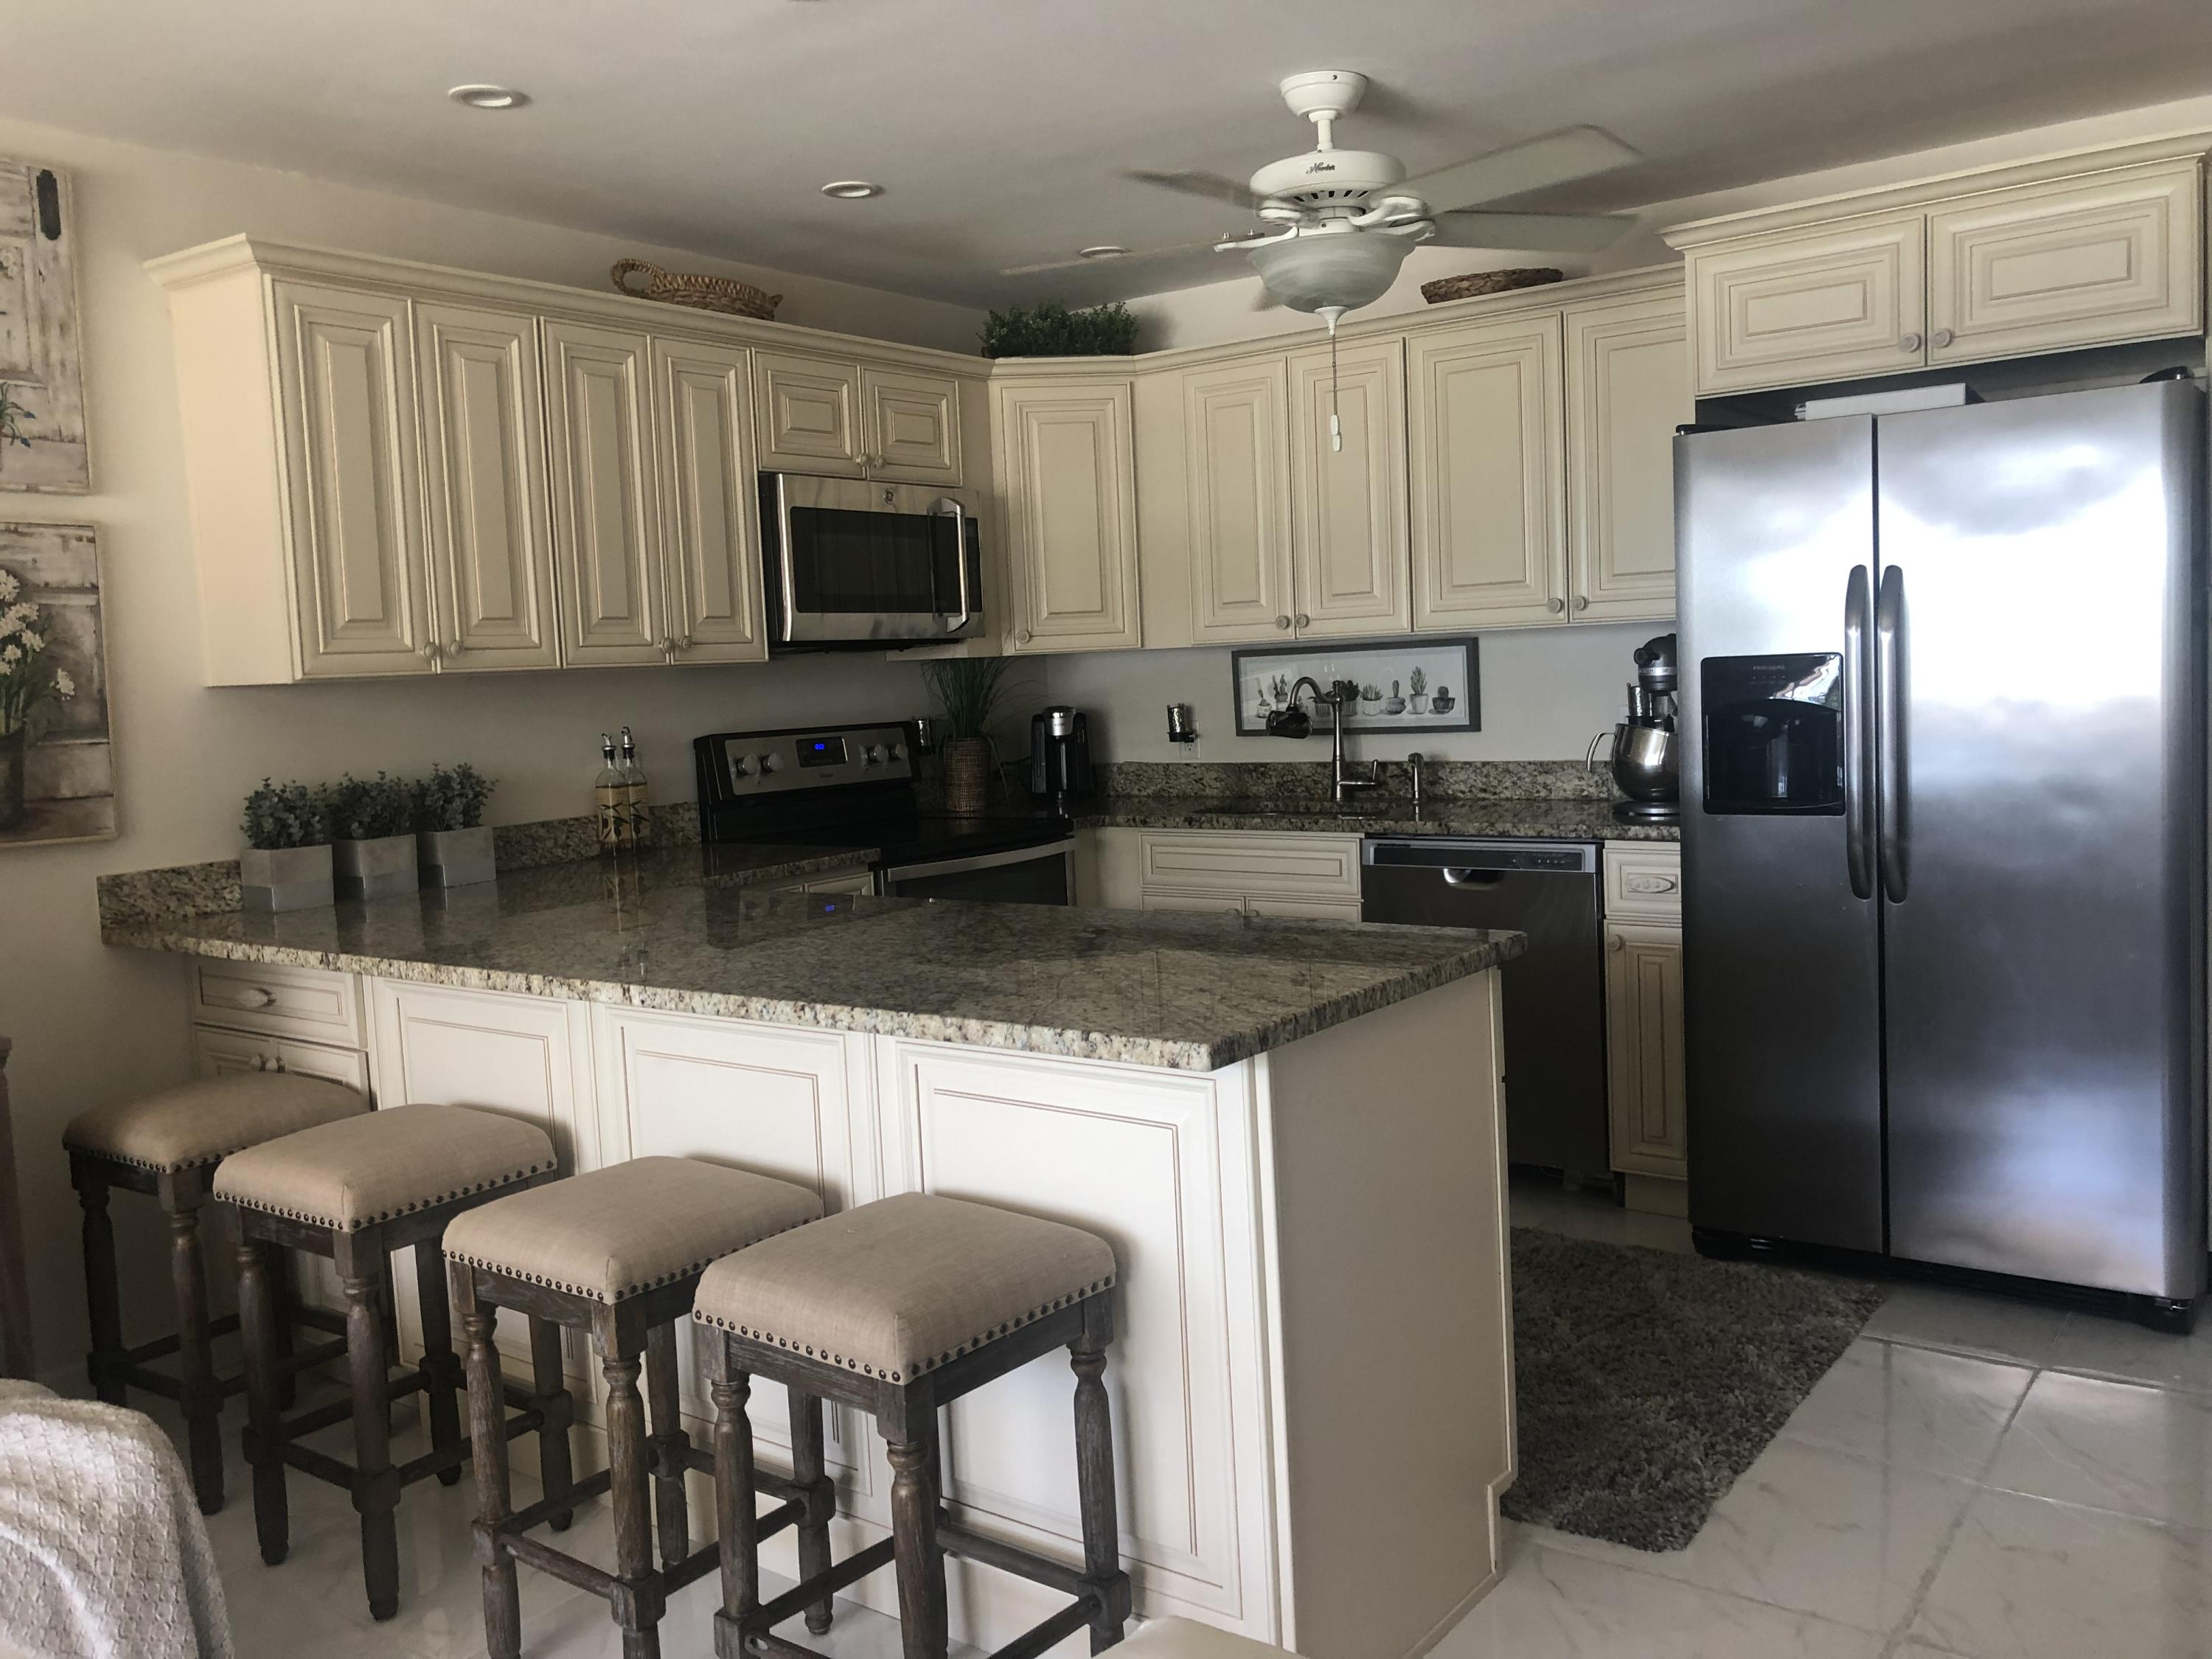 42 Sussex B West Palm Beach, FL 33417